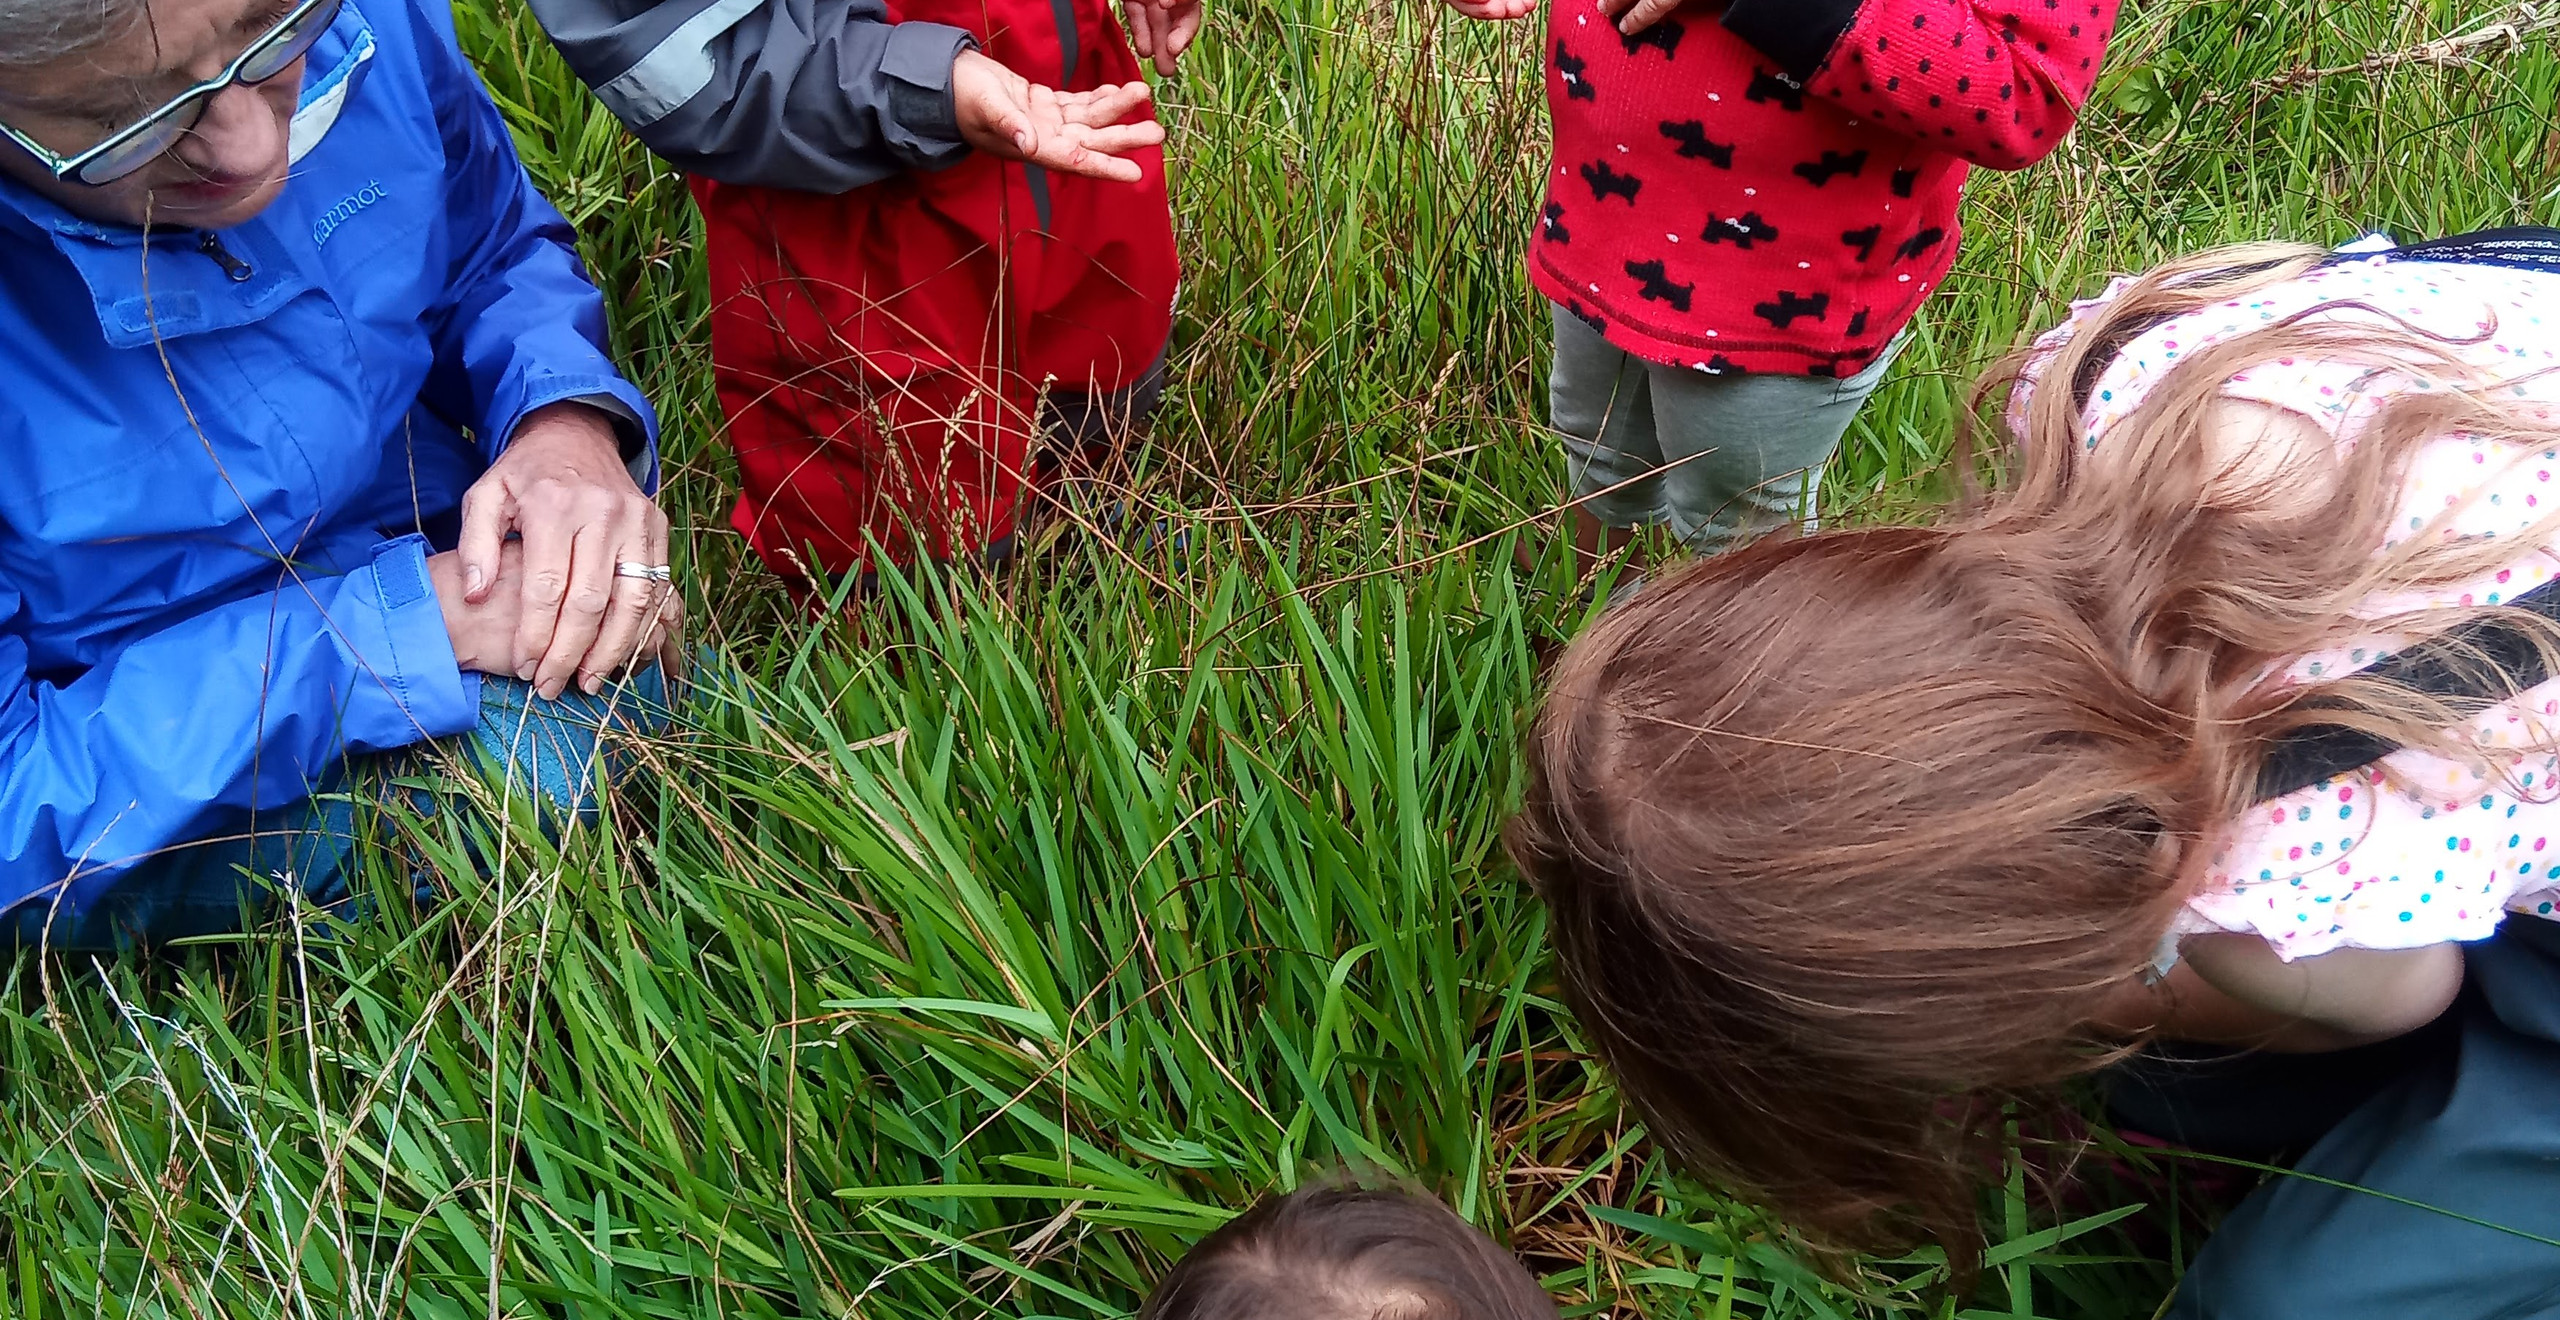 Cheryl, Nathan, Mina, Luka, and Alana look at ladybugs and into the grass where many ladybugs were found.